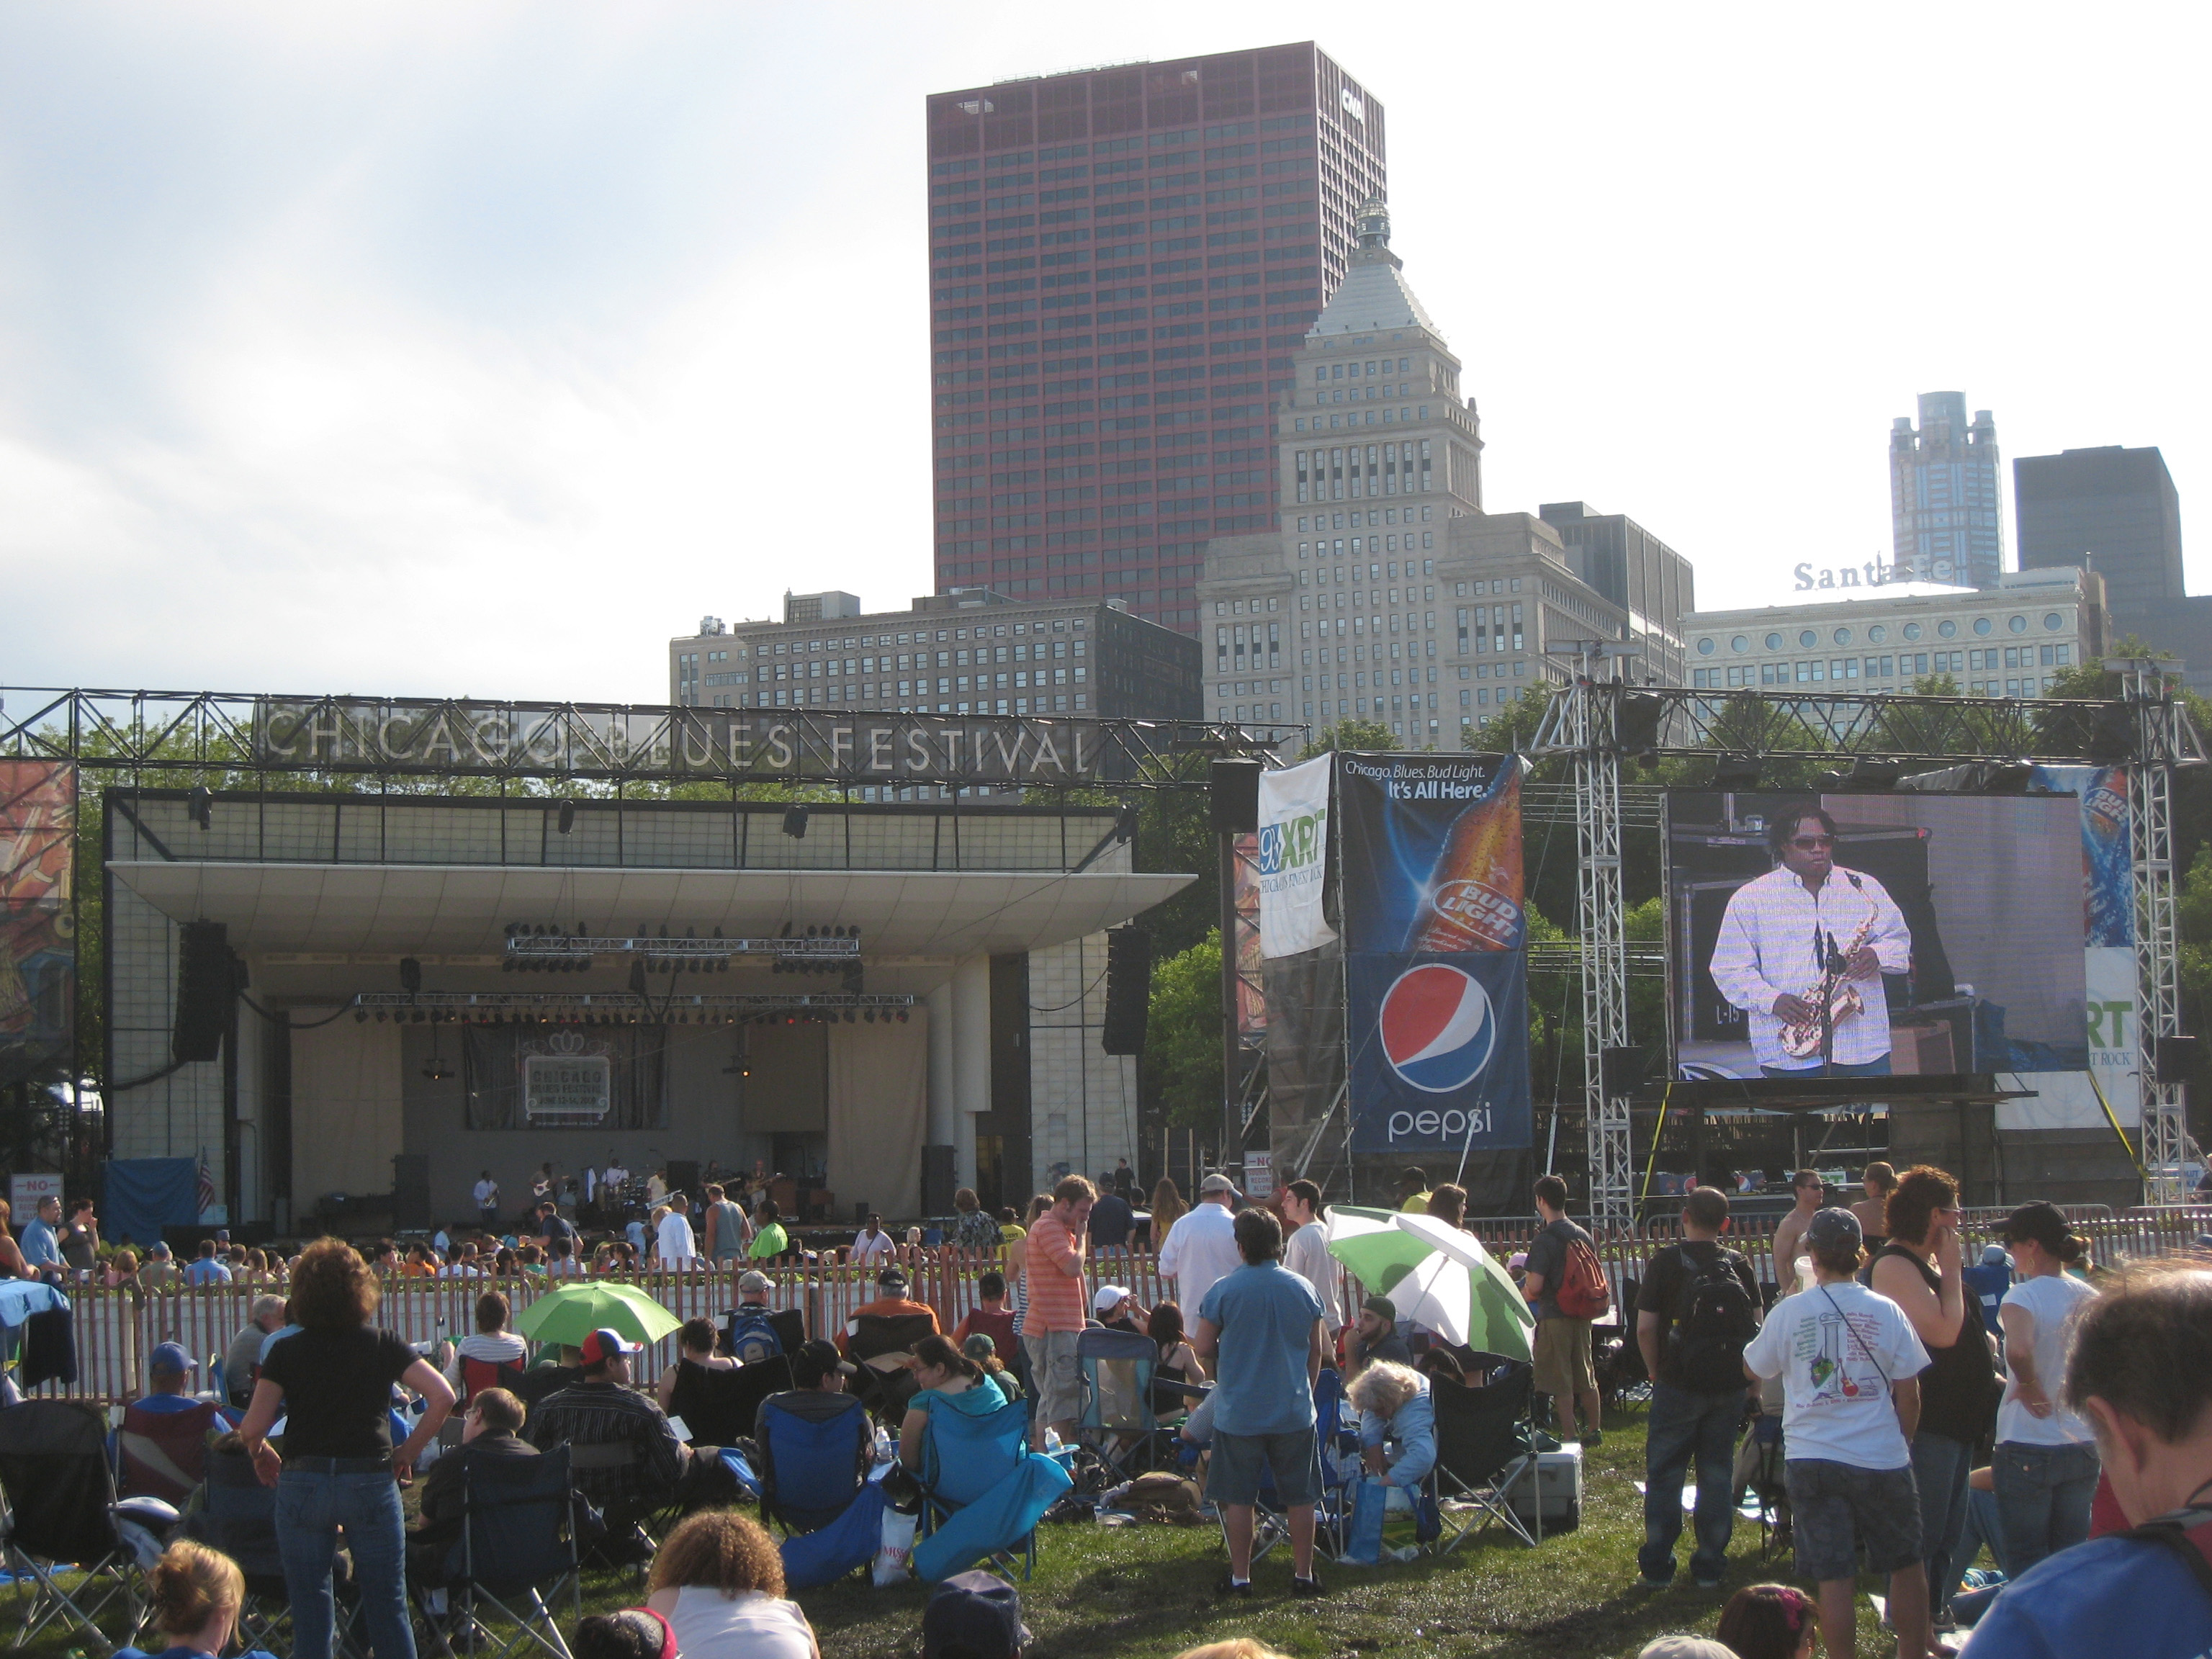 Blue skies at the Chicago Blues Festival